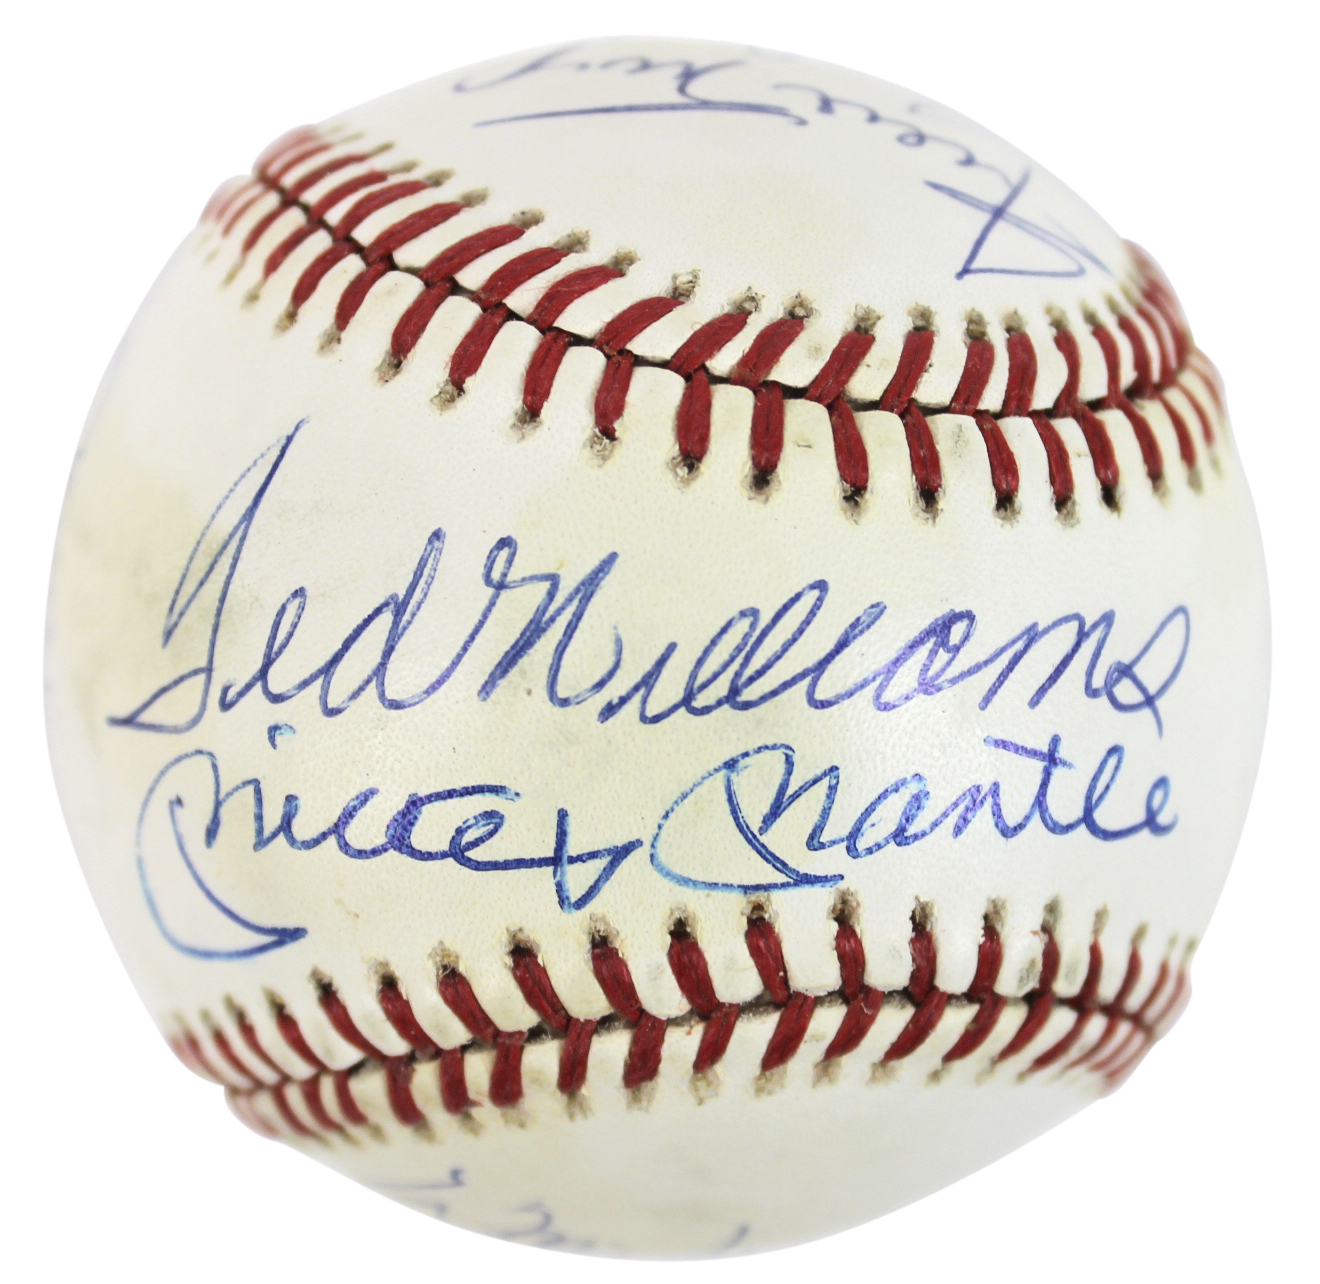 500 Home Run Club (11) Williams, Mantle, Mays Signed Onl Baseball Bas #a11550